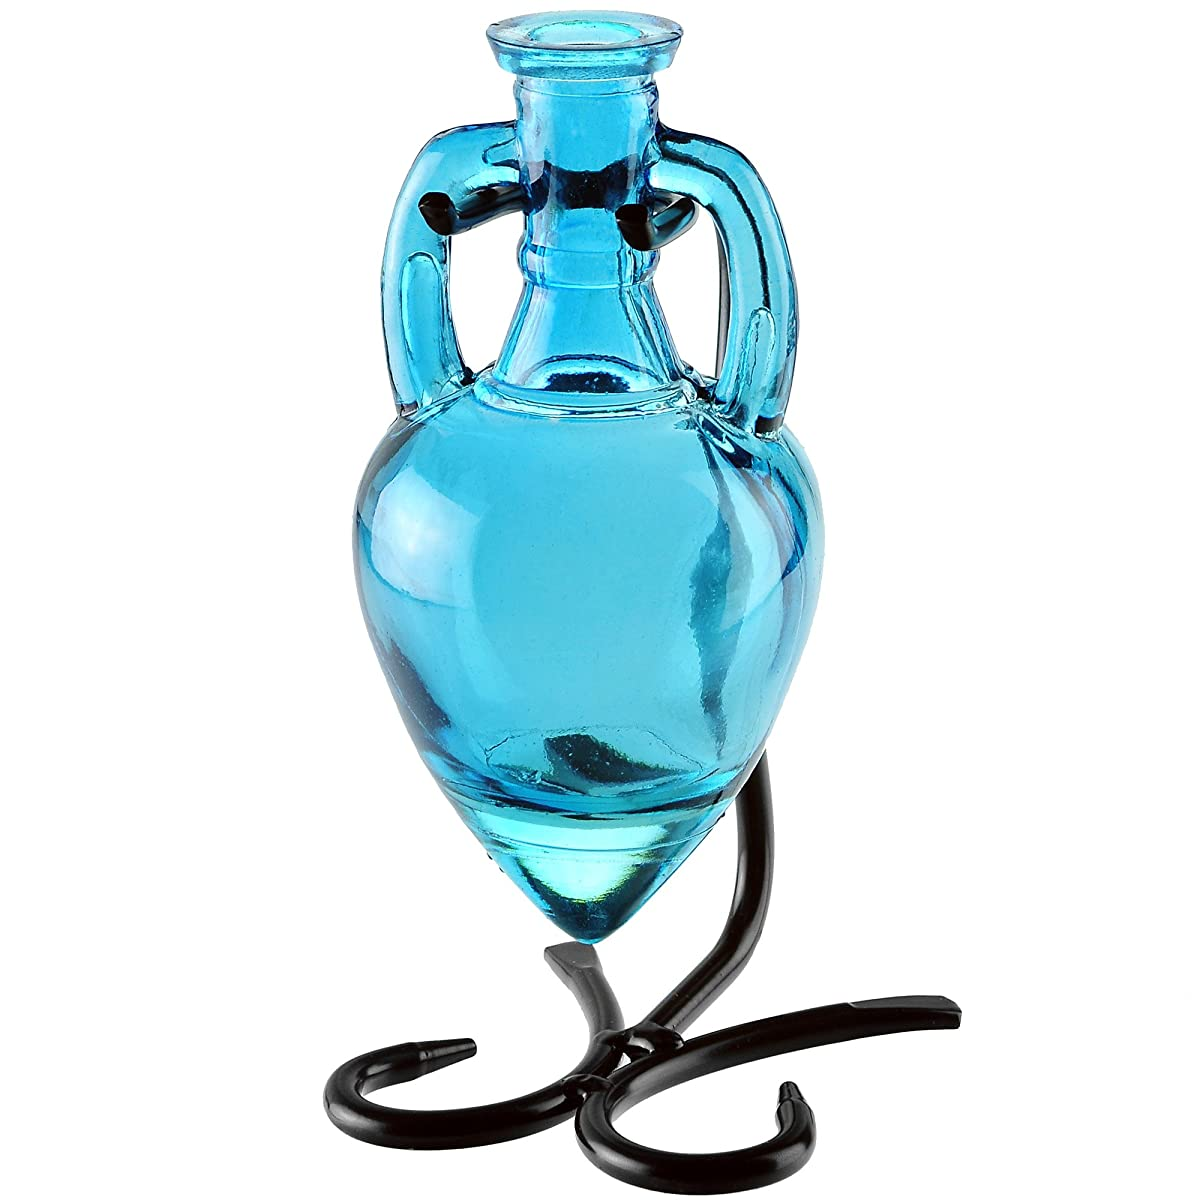 """Couronne Company M405-200-09 Amphora Recycled Glass Vase & Metal Stand, 7"""", Aqua, 1 Piece"""